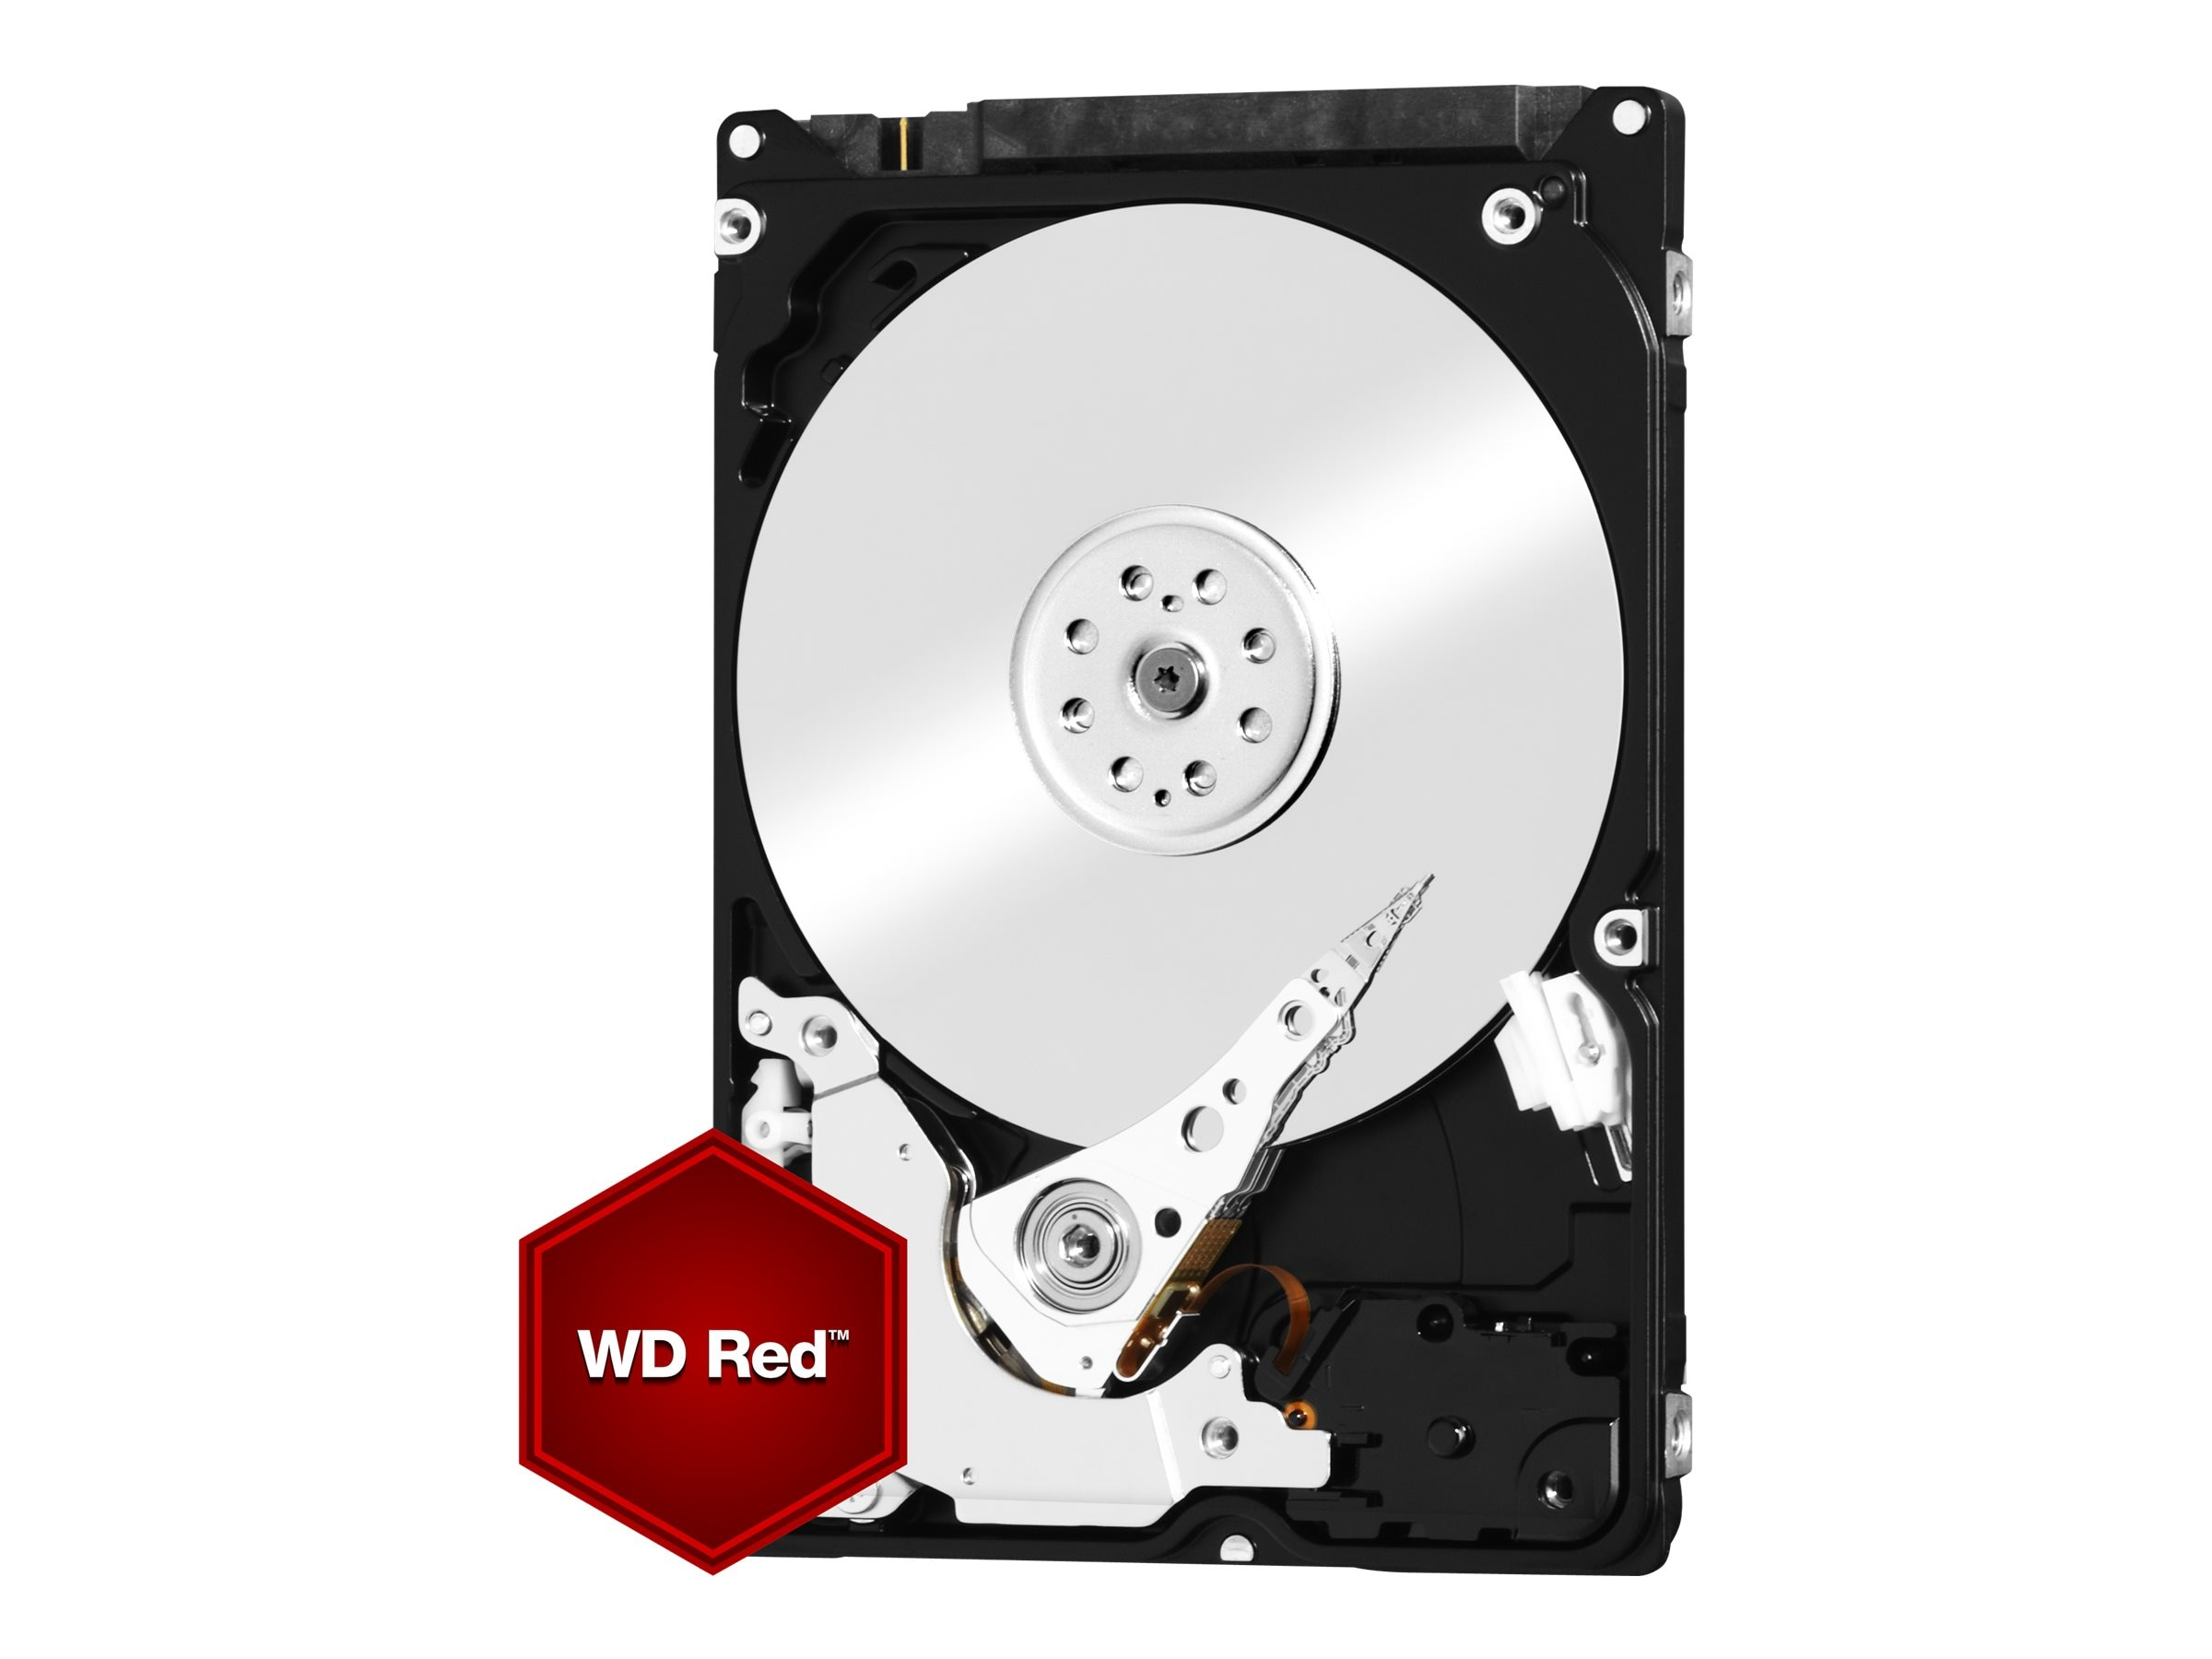 Open Box WD 750GB WD Red SATA 6Gb s 2.5 Internal NAS Hard Drive, WD7500BFCX